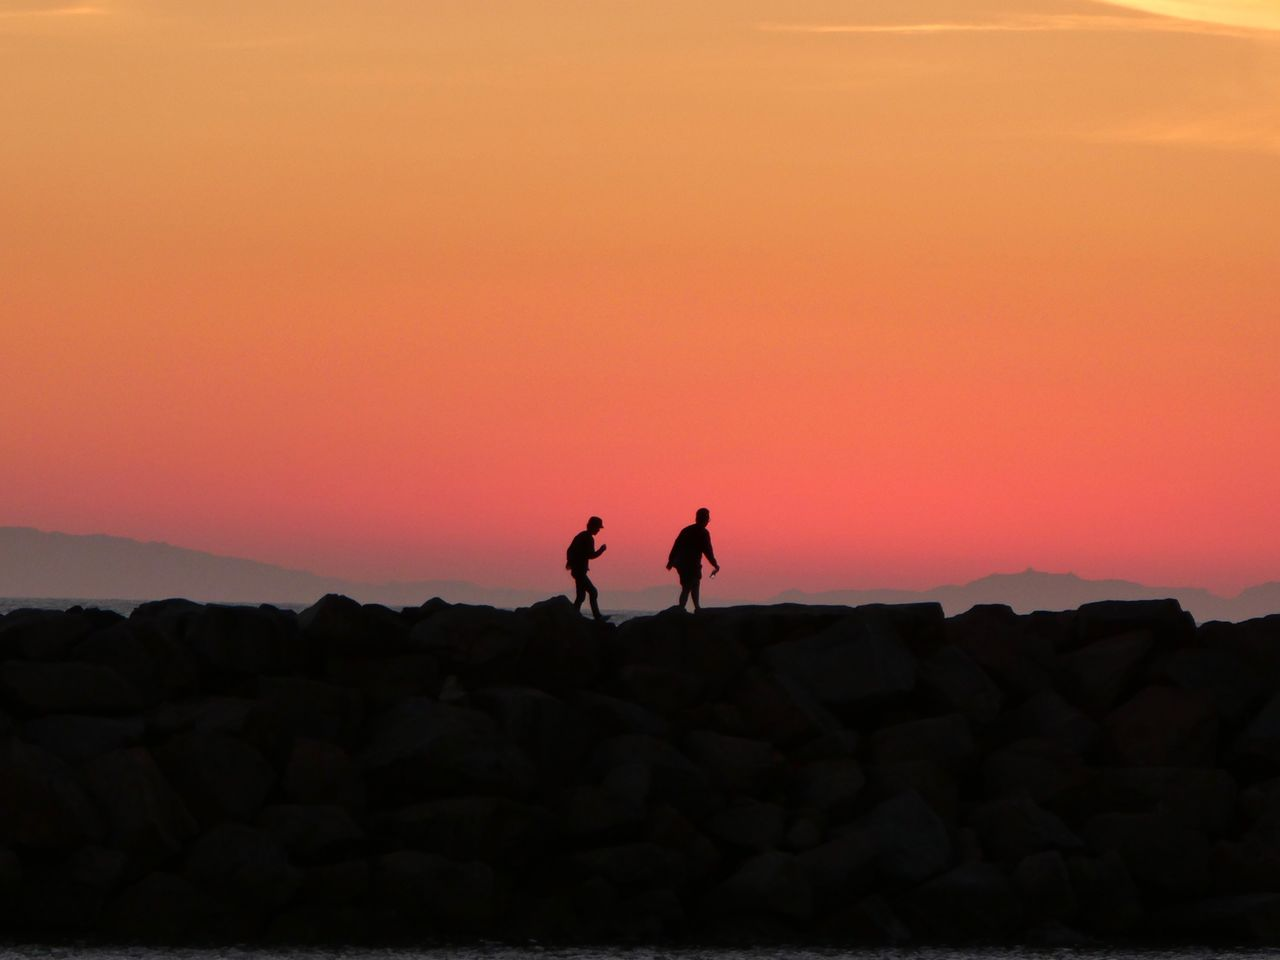 Silhouette People Standing On Rock Against Sky During Sunset